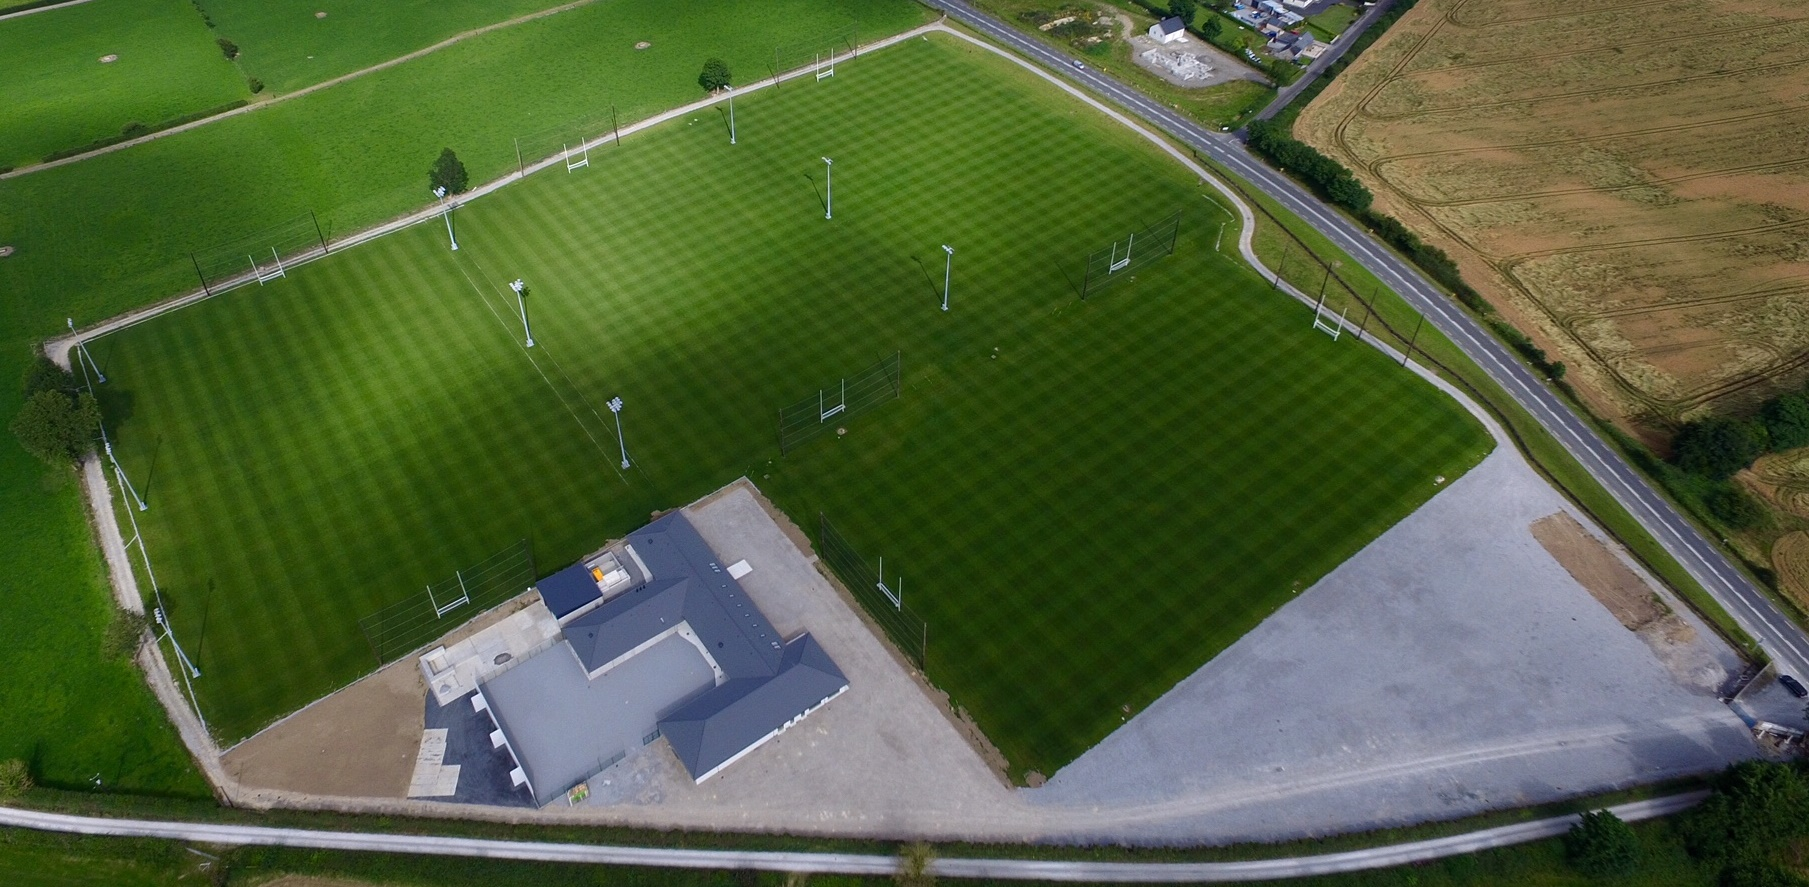 Update on The Faithful Fields Project